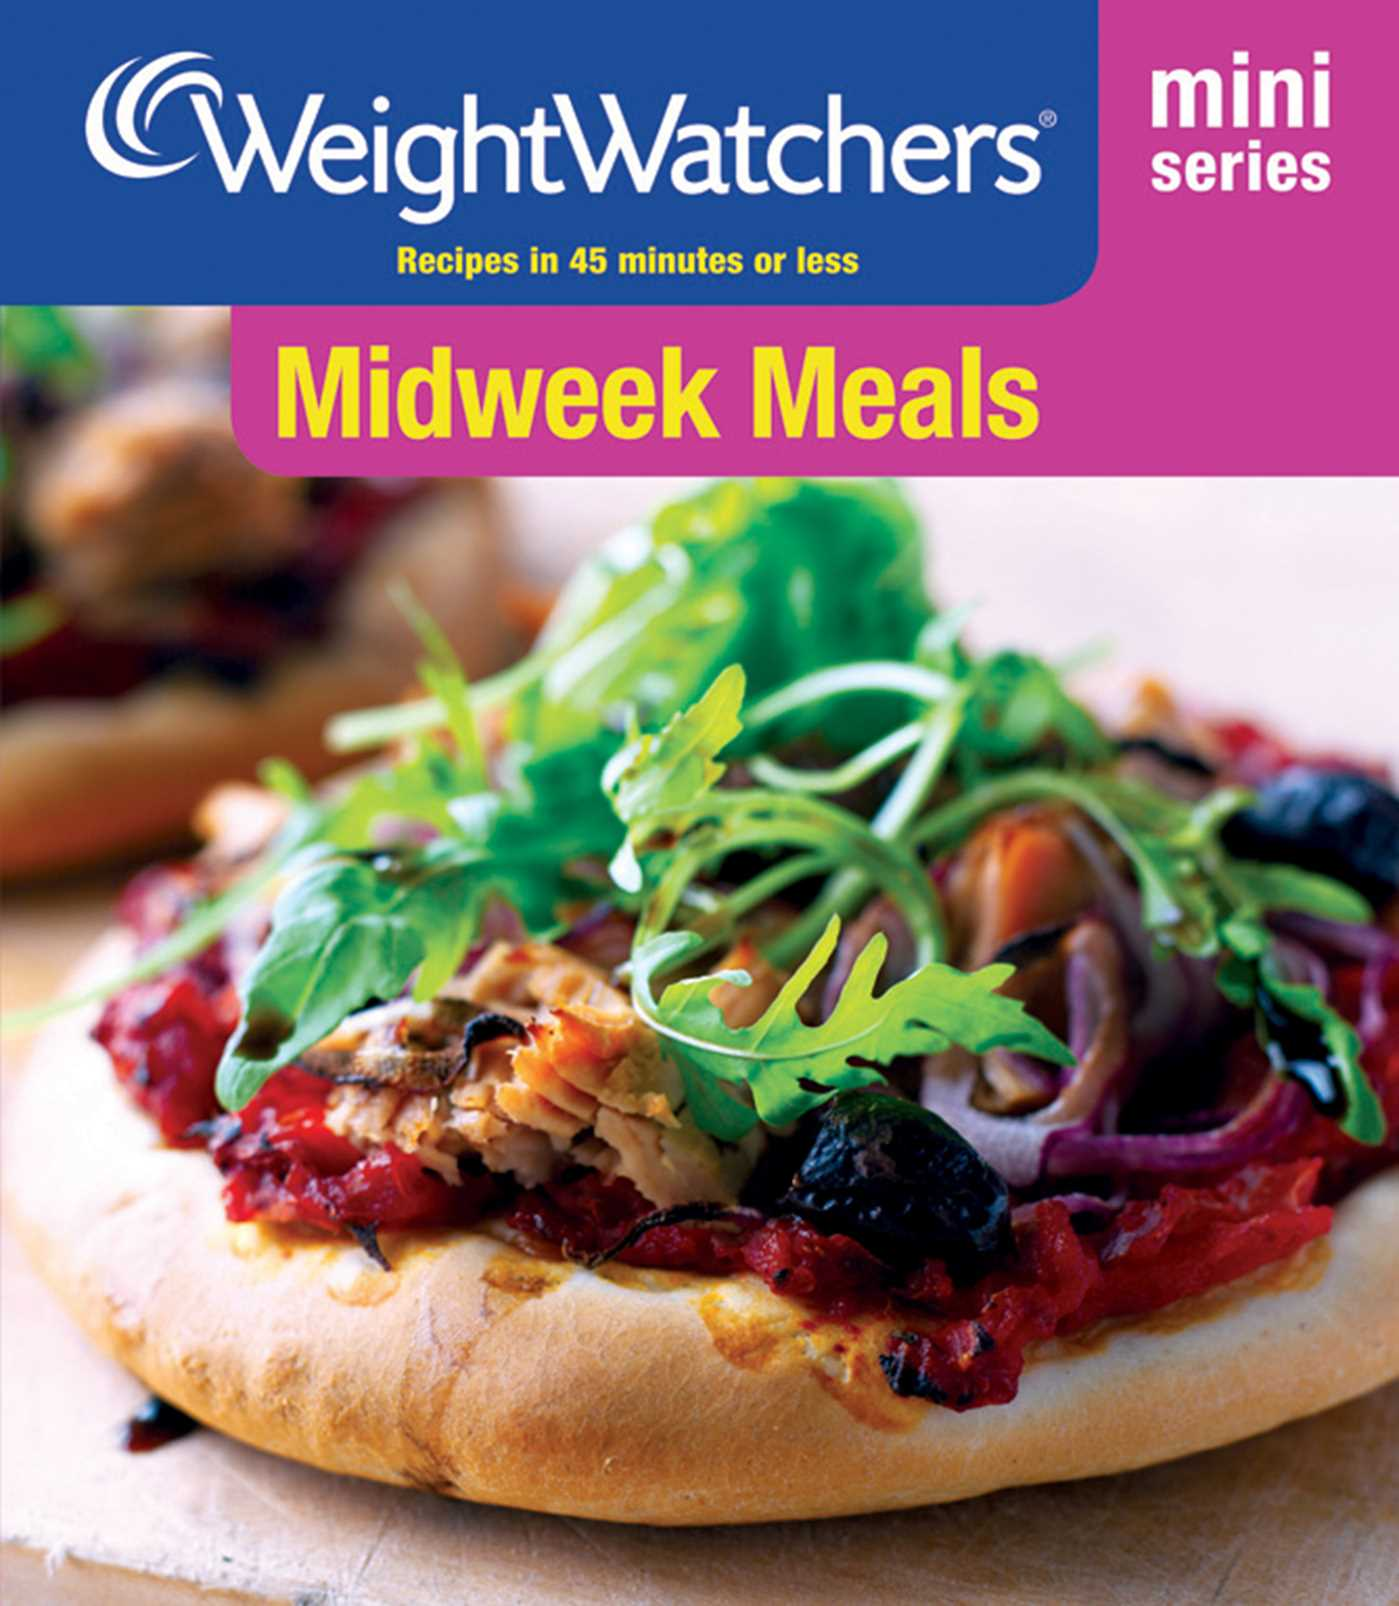 Weight watchers mini series midweek meals 9781471151330 hr